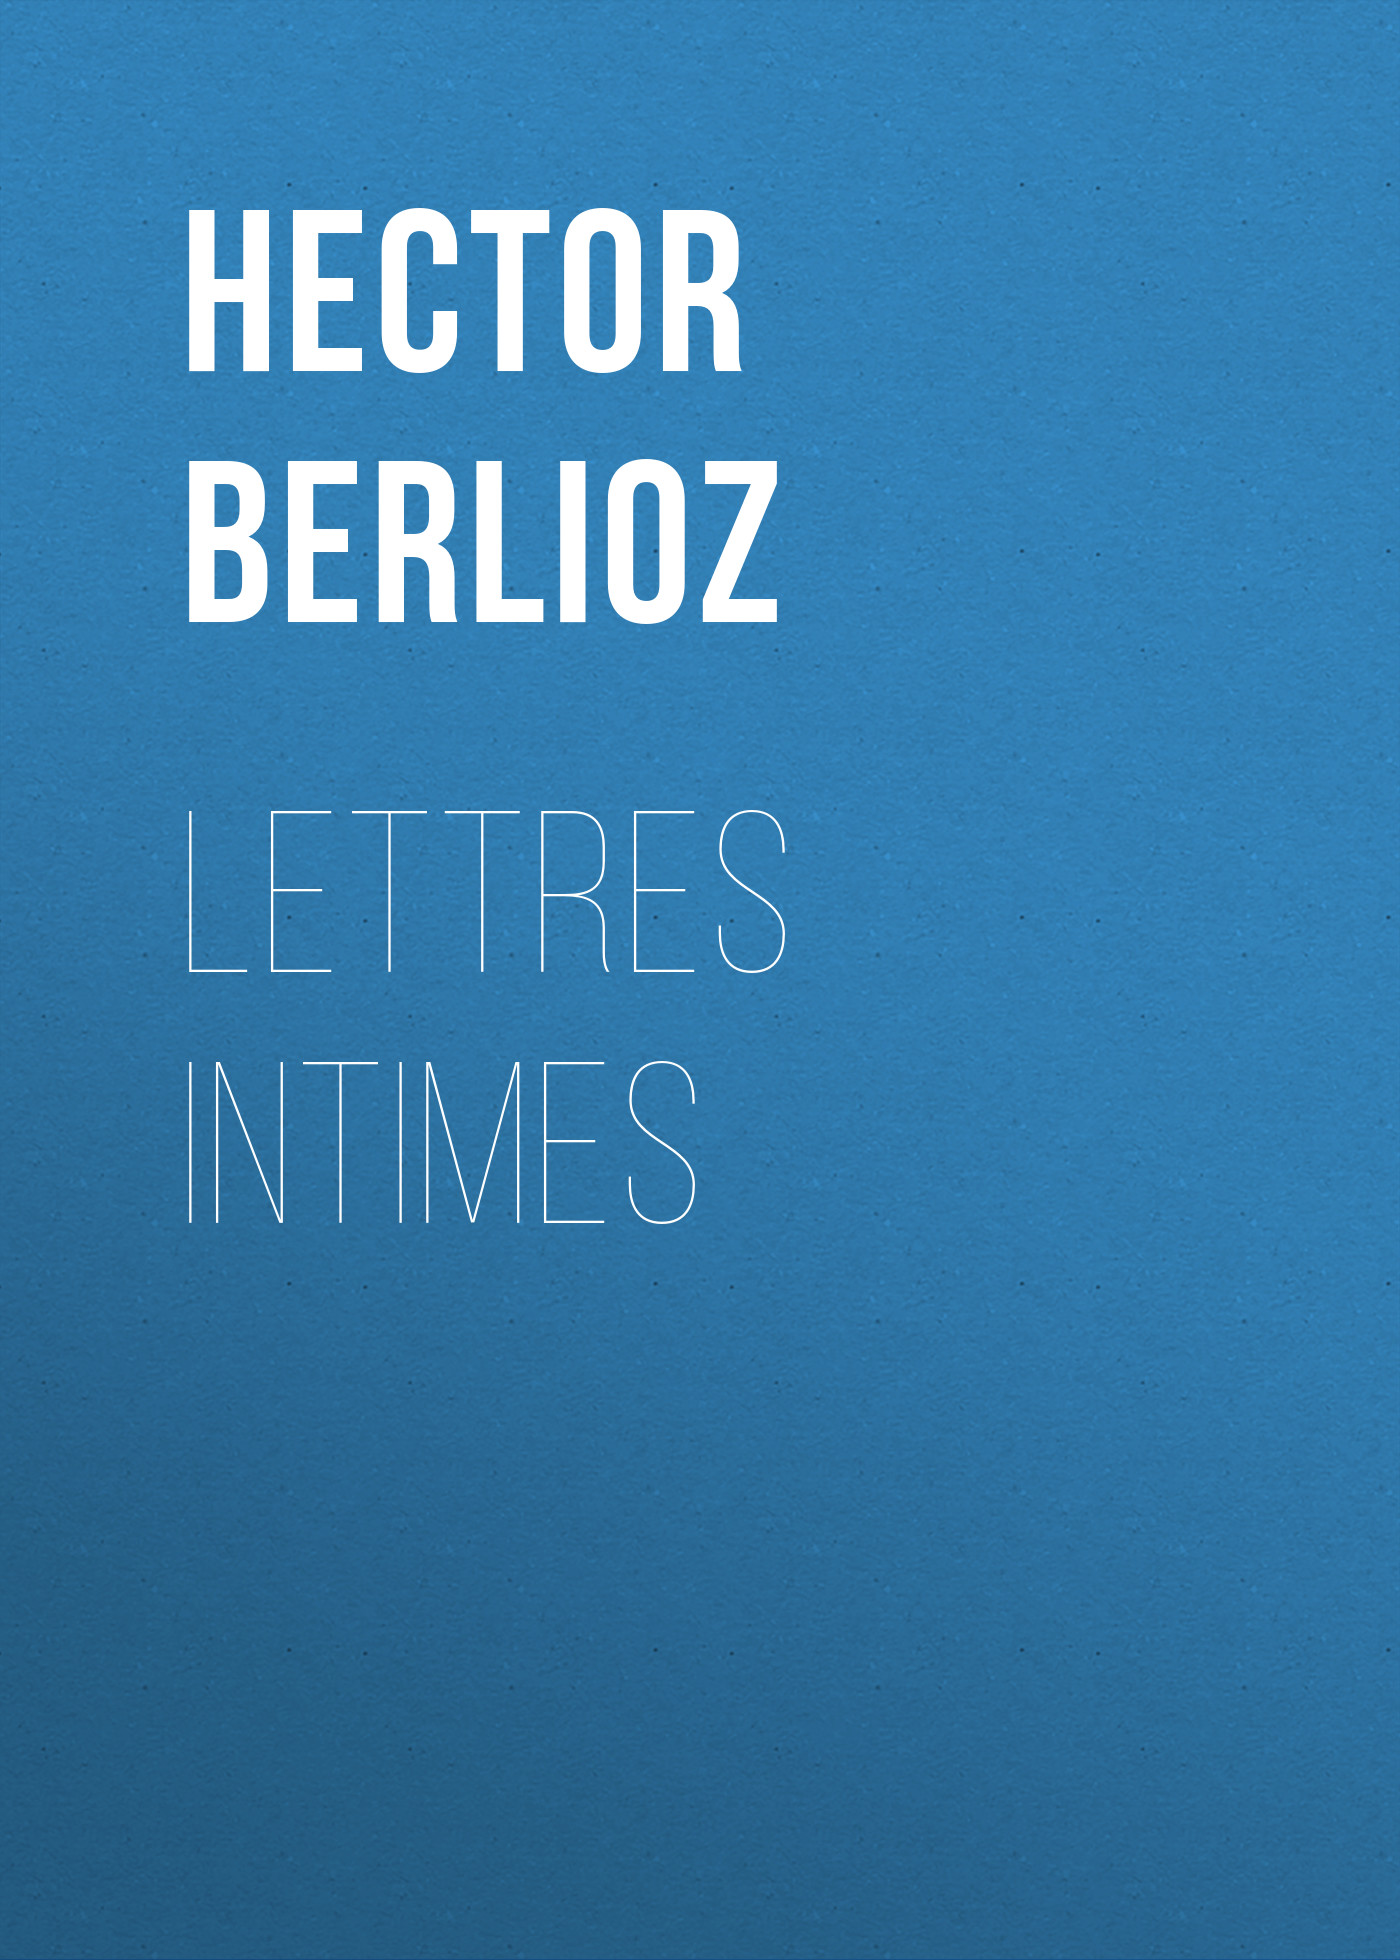 Hector Berlioz Lettres intimes штора для ванной lemark black lounge c2018t042